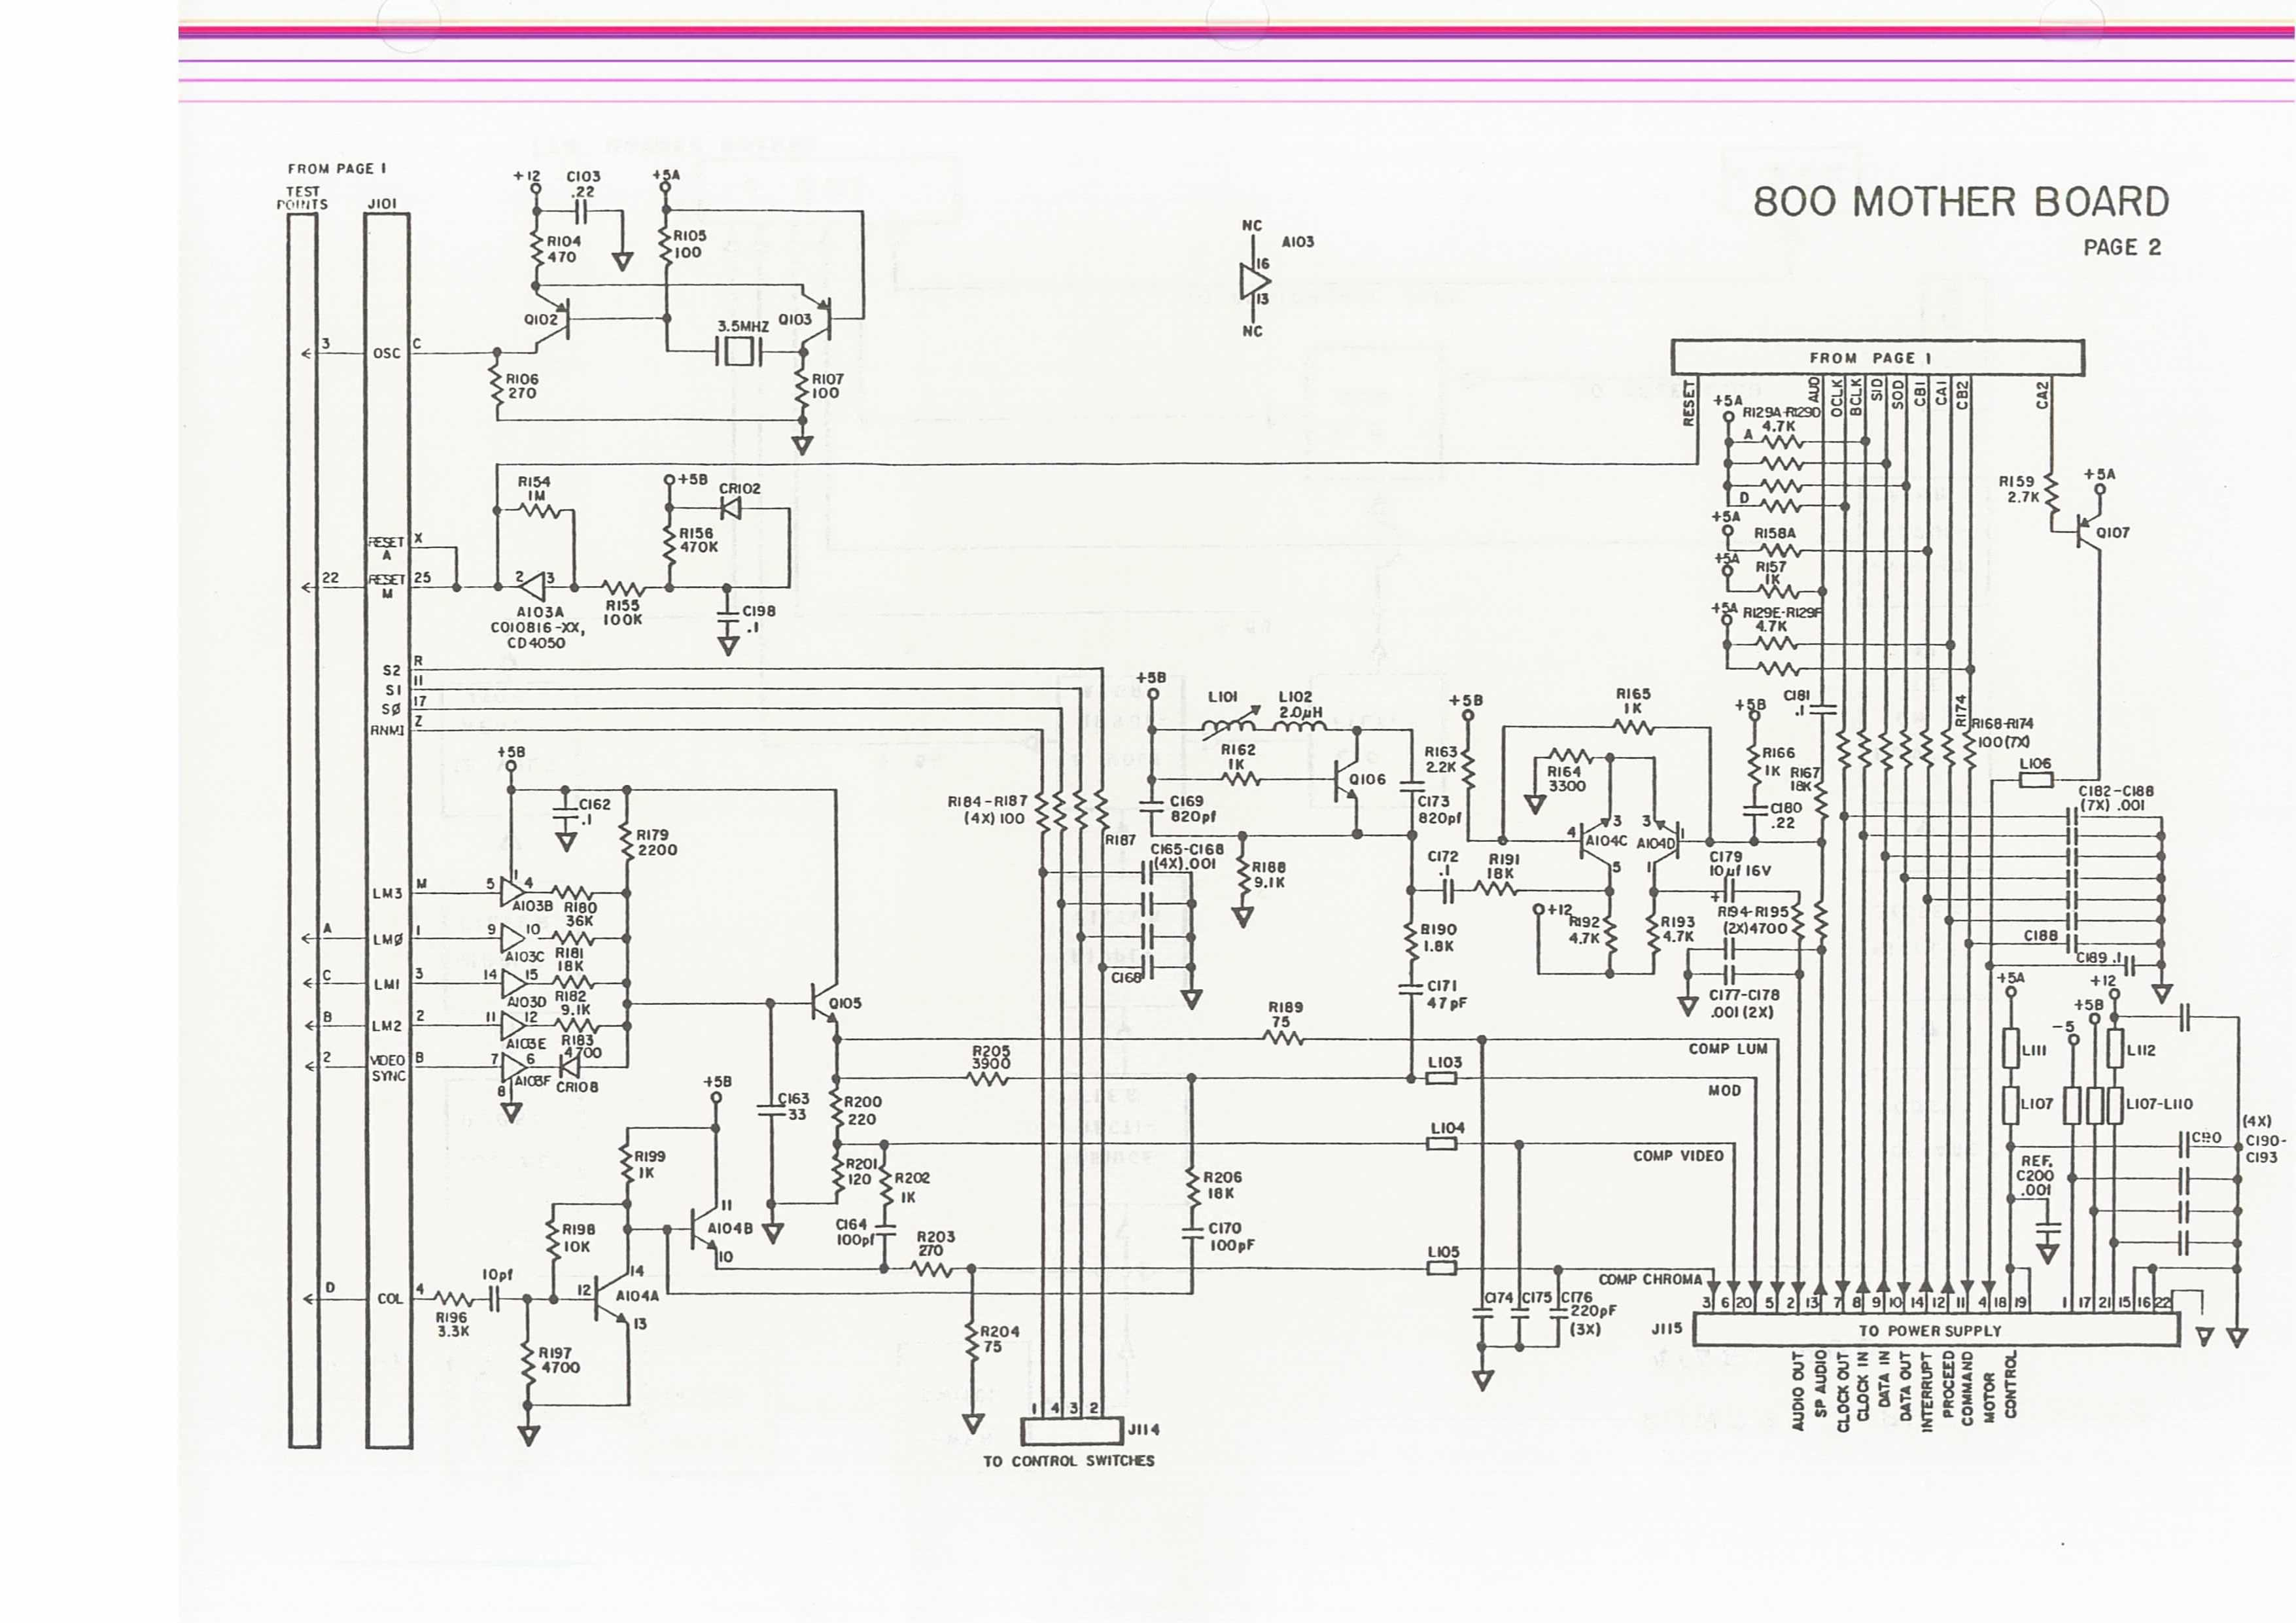 Atari 2600 Wiring Diagram Trusted Diagrams Flashback Schematics U2022 7